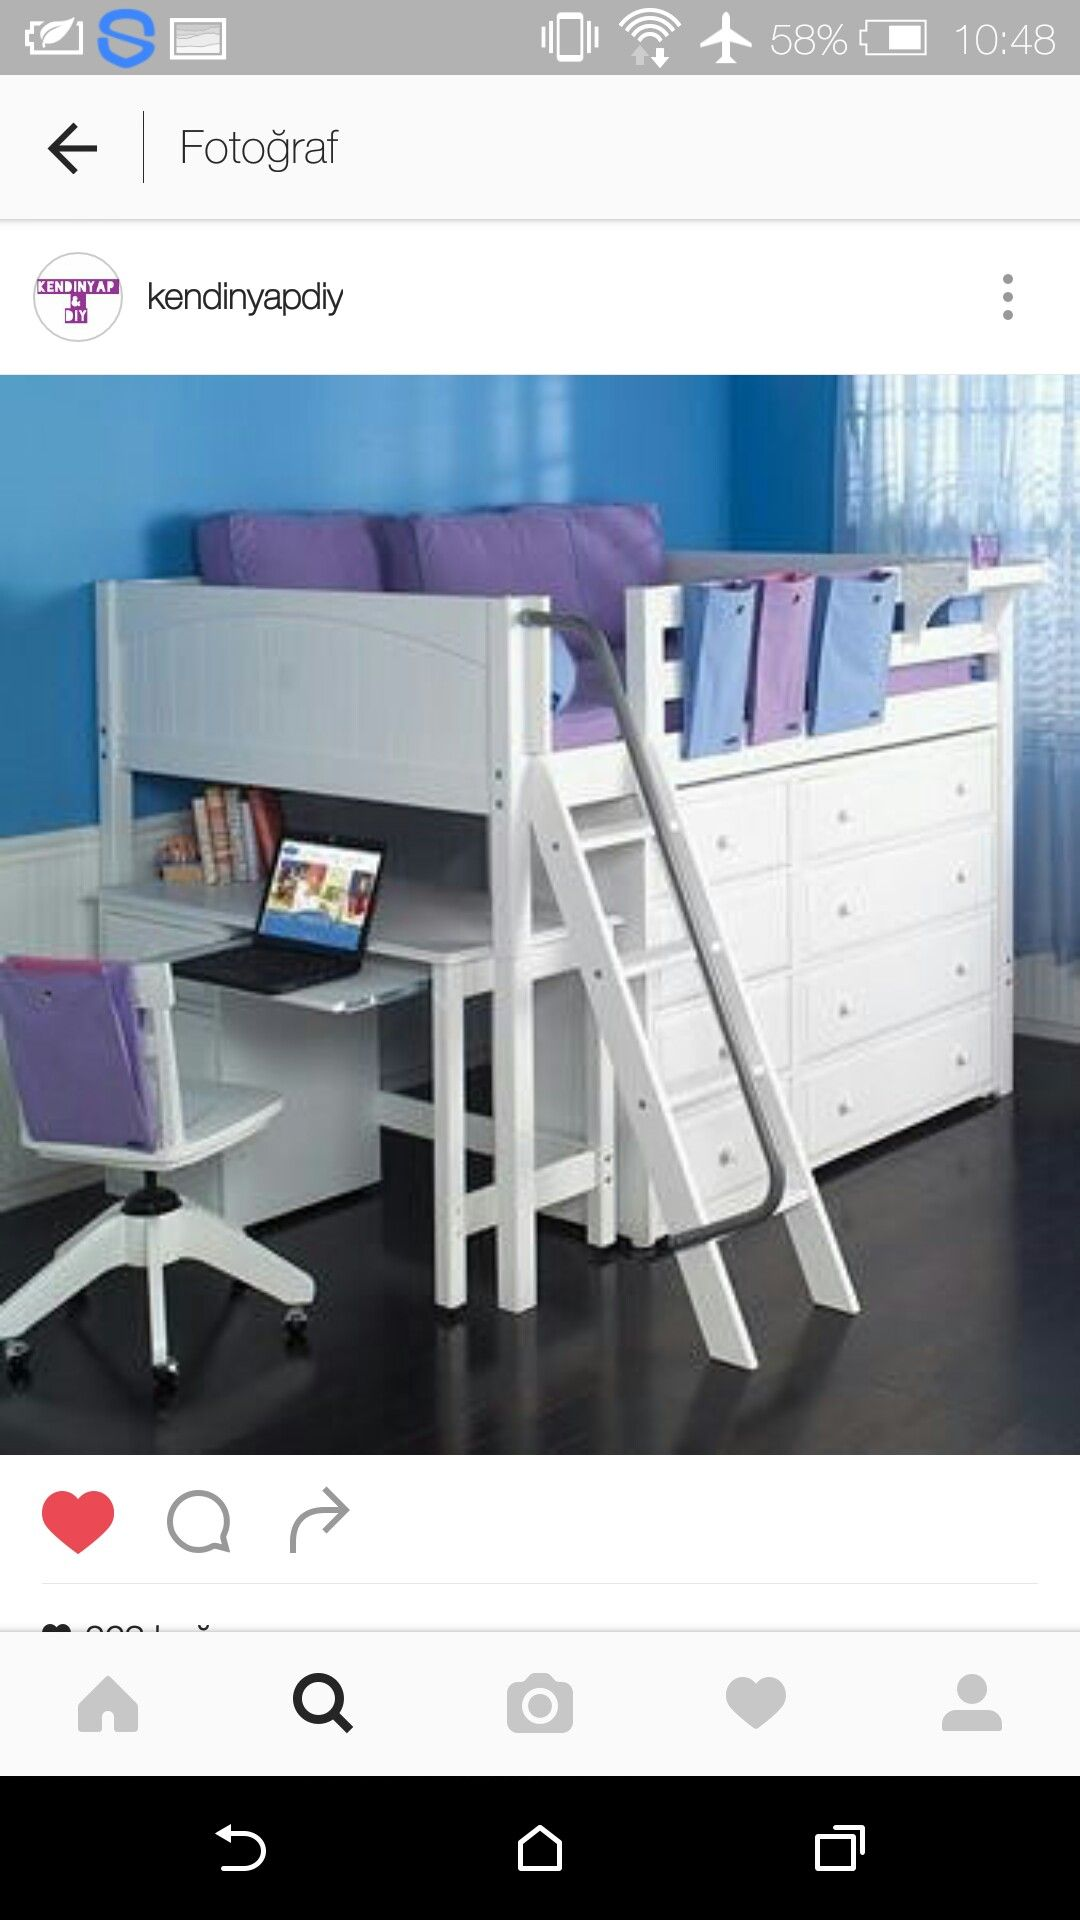 Small loft bed ideas  Pin by Mia Brady on Mia  Pinterest  Room Room ideas and Kids rooms